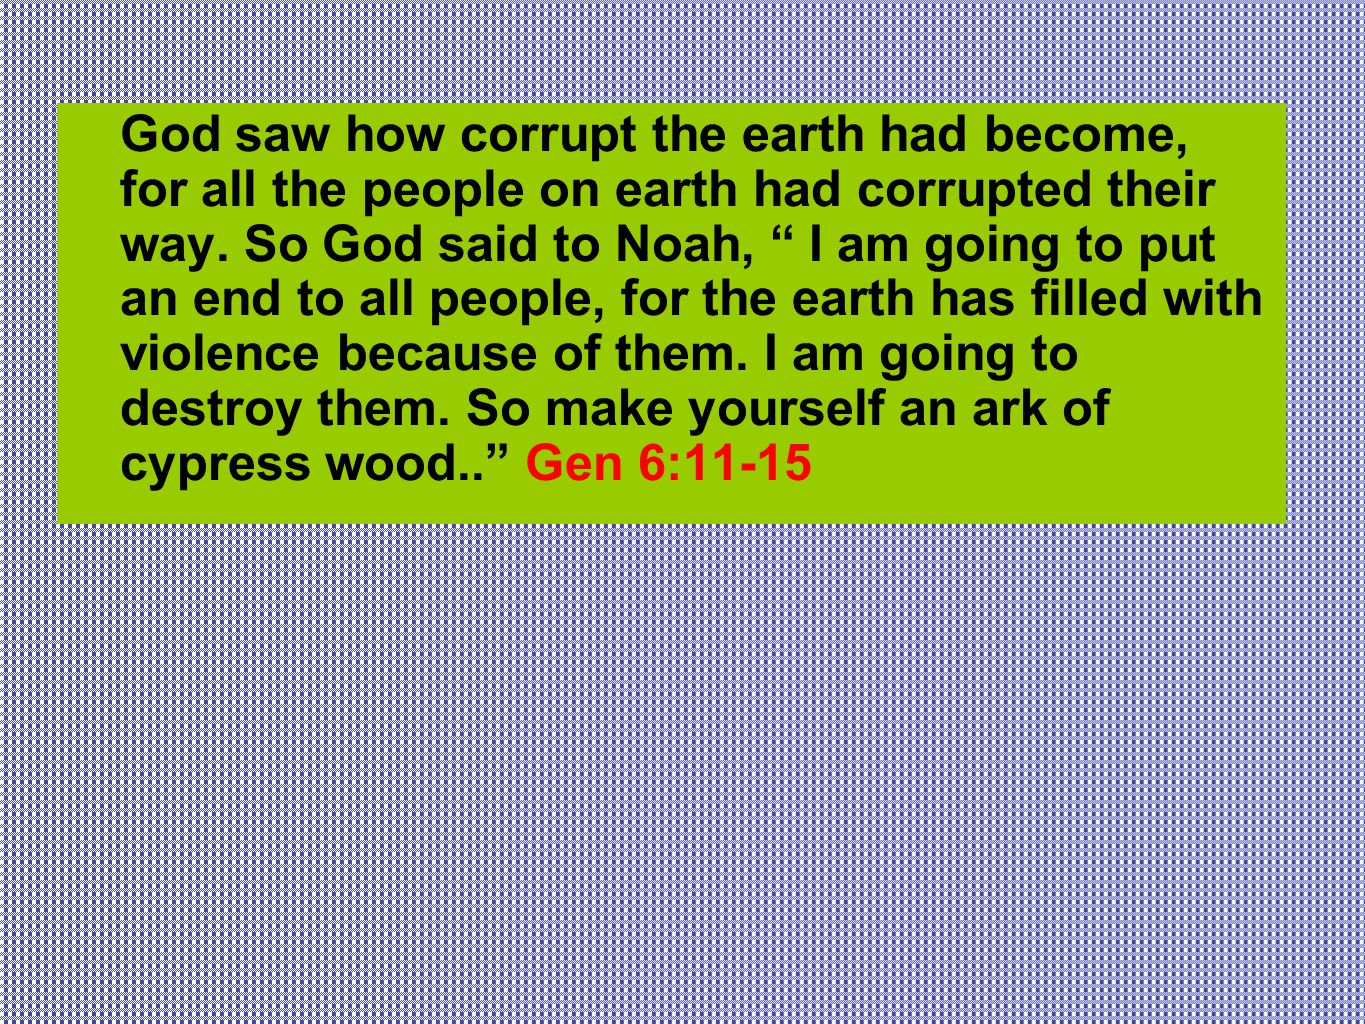 God saw how corrupt the earth had become, for all the people on earth had corrupted their way.